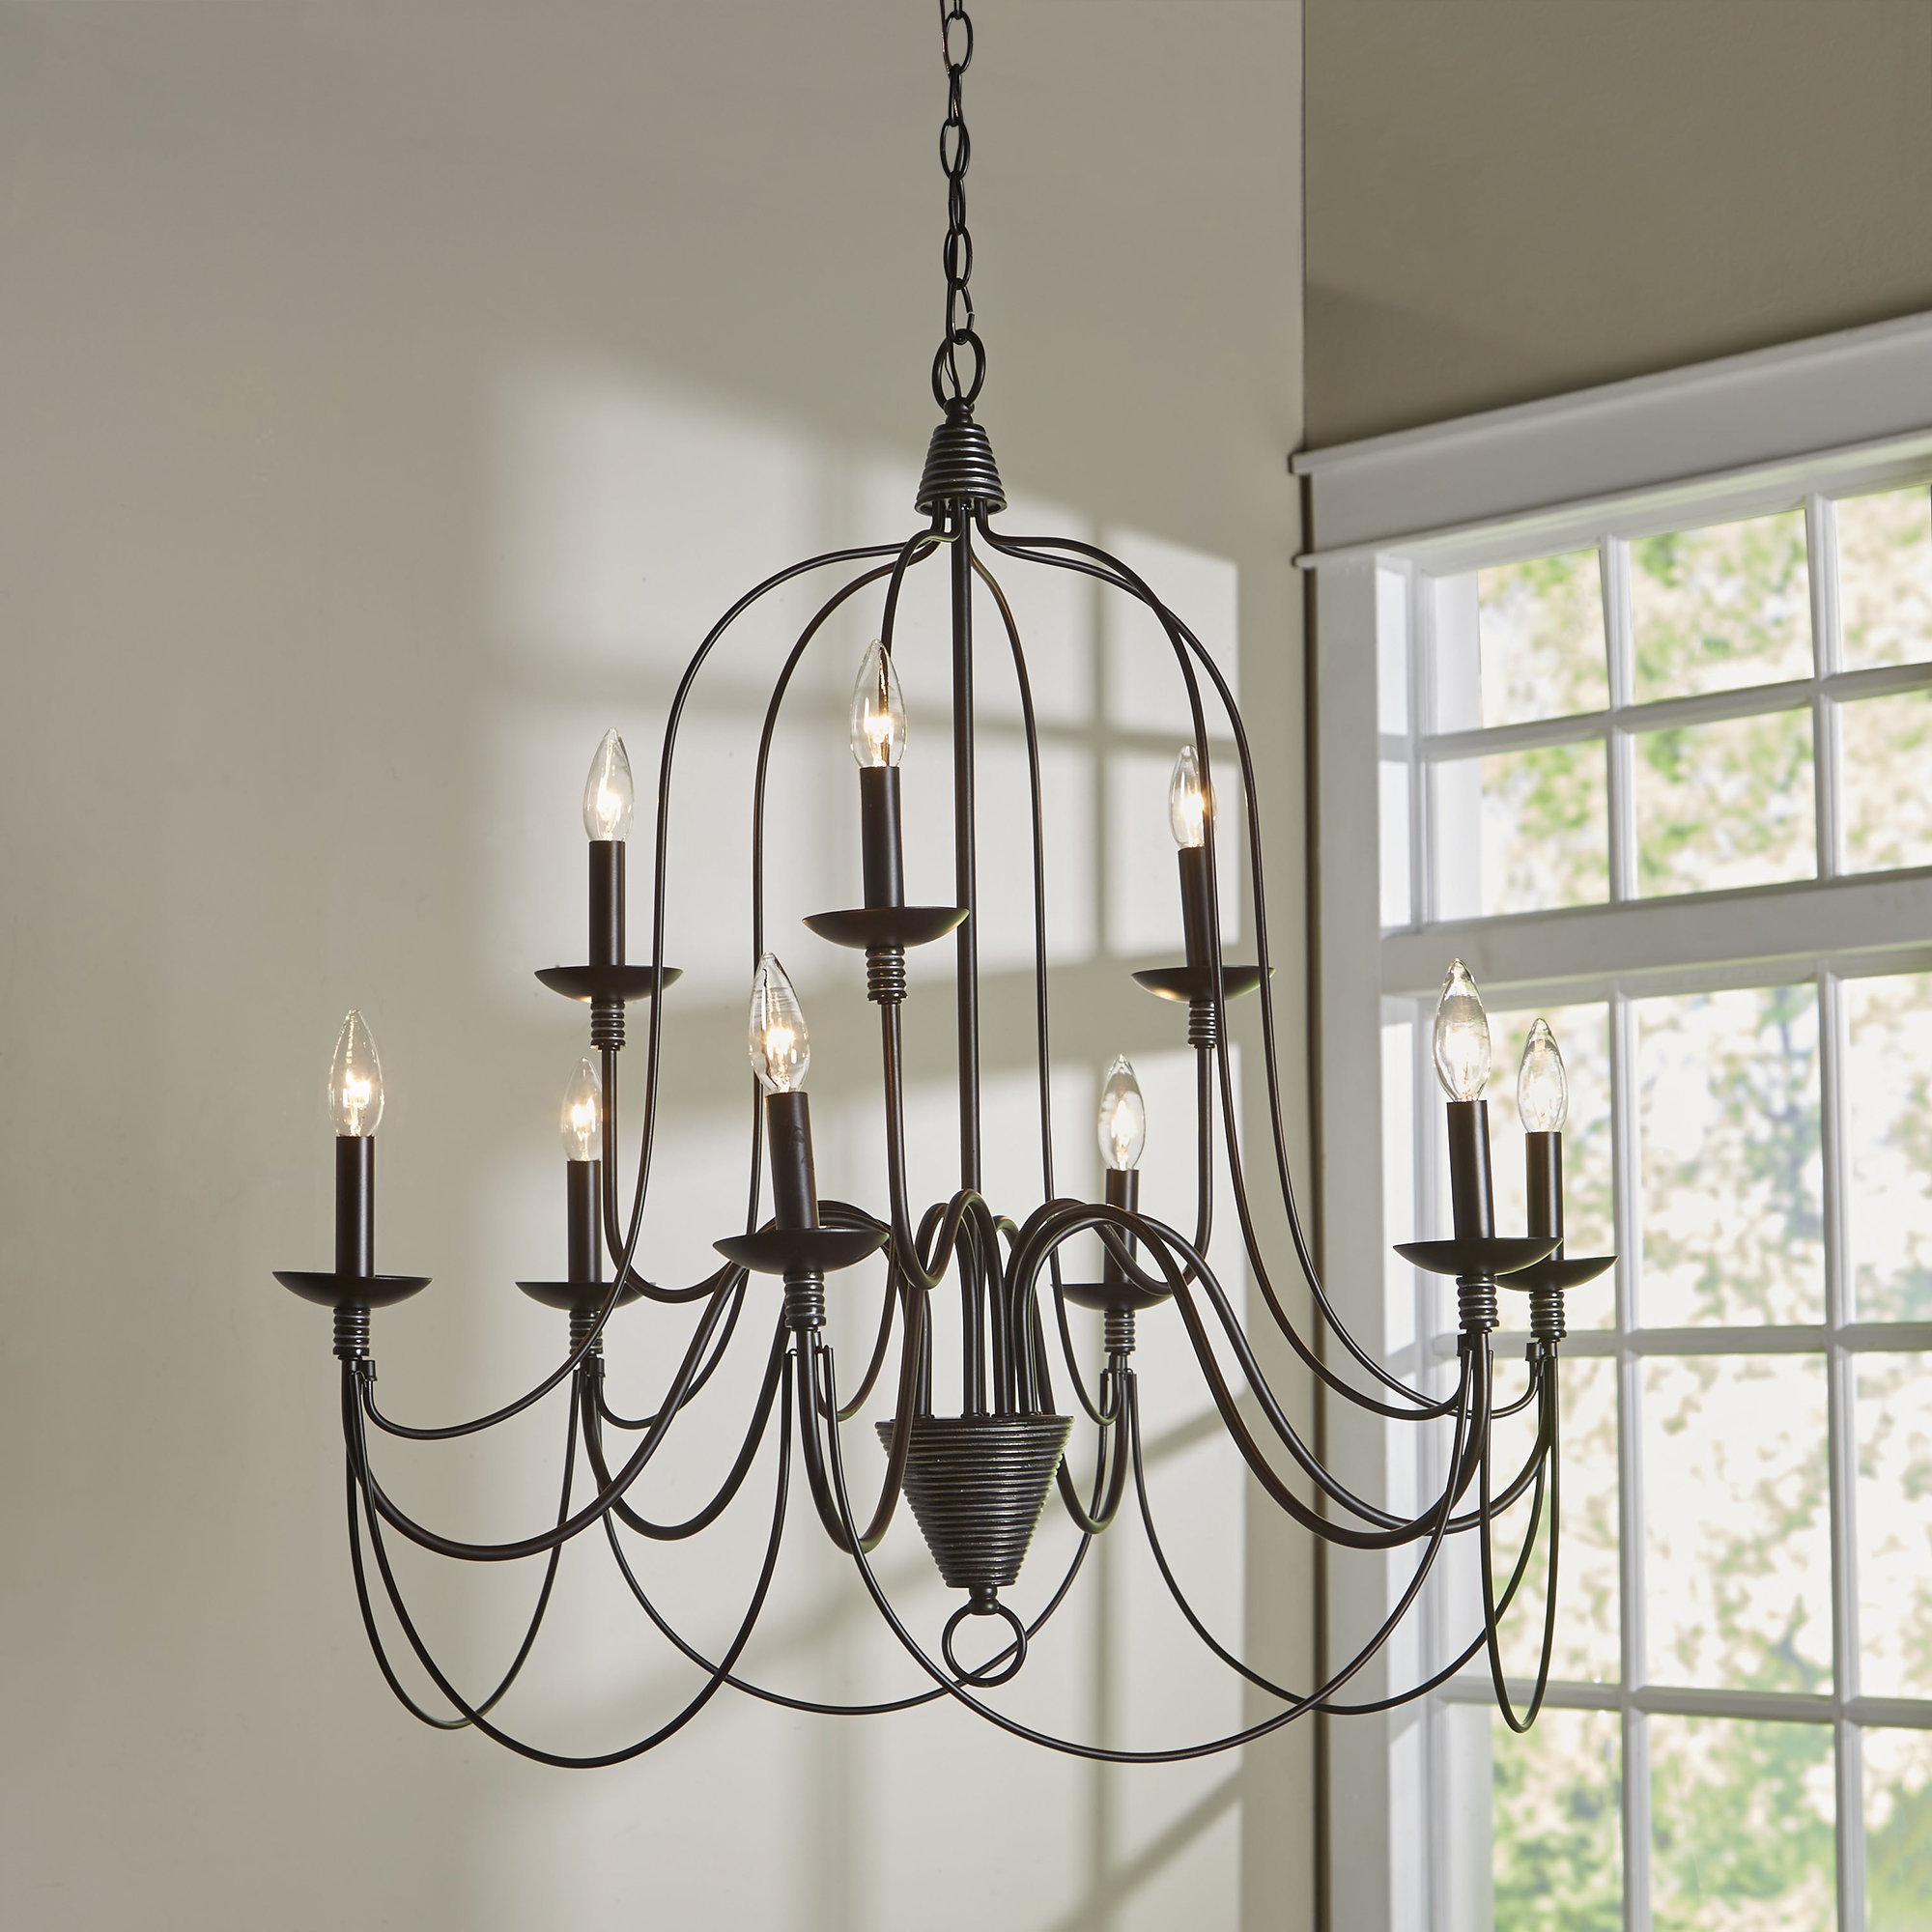 Camilla 9 Light Candle Style Chandeliers With Regard To Most Popular Three Posts Watford 9 Light Candle Style Chandelier (View 8 of 20)